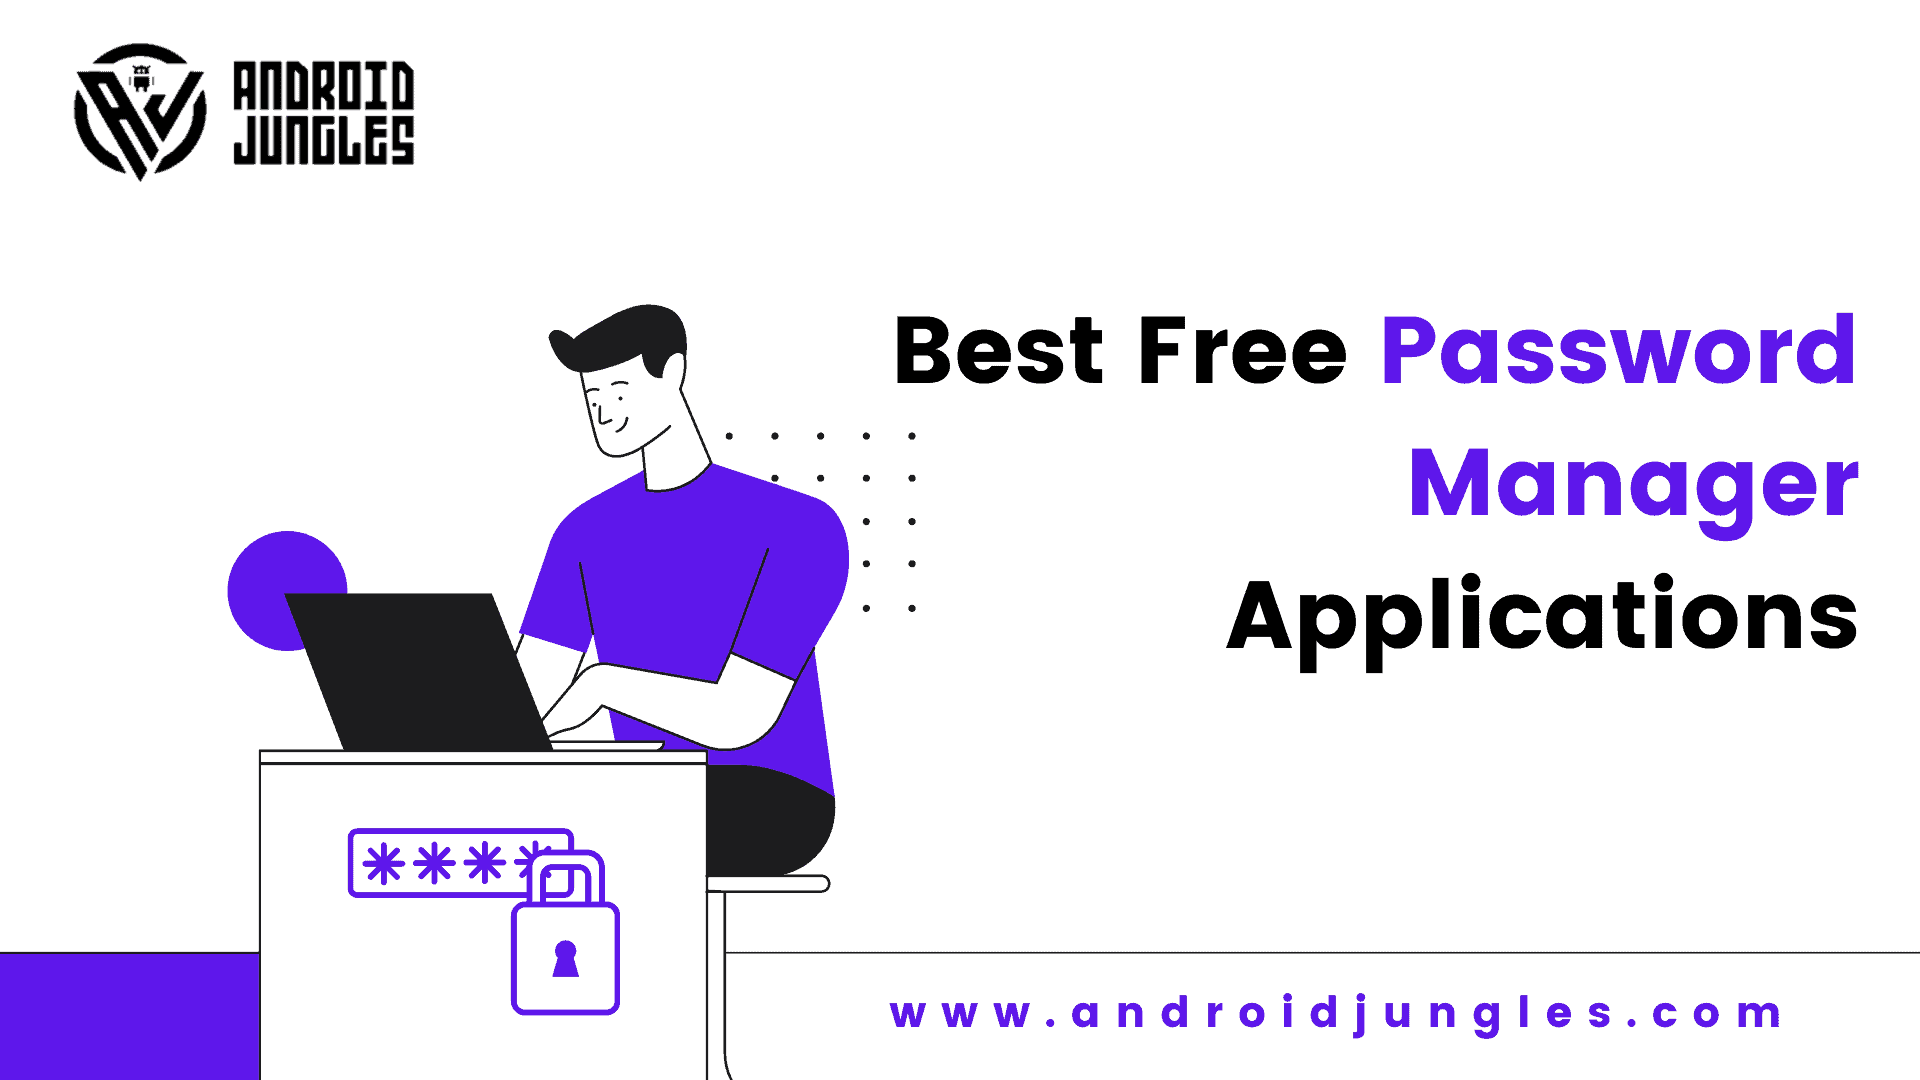 Top 3 Best Free Password Manager Applications